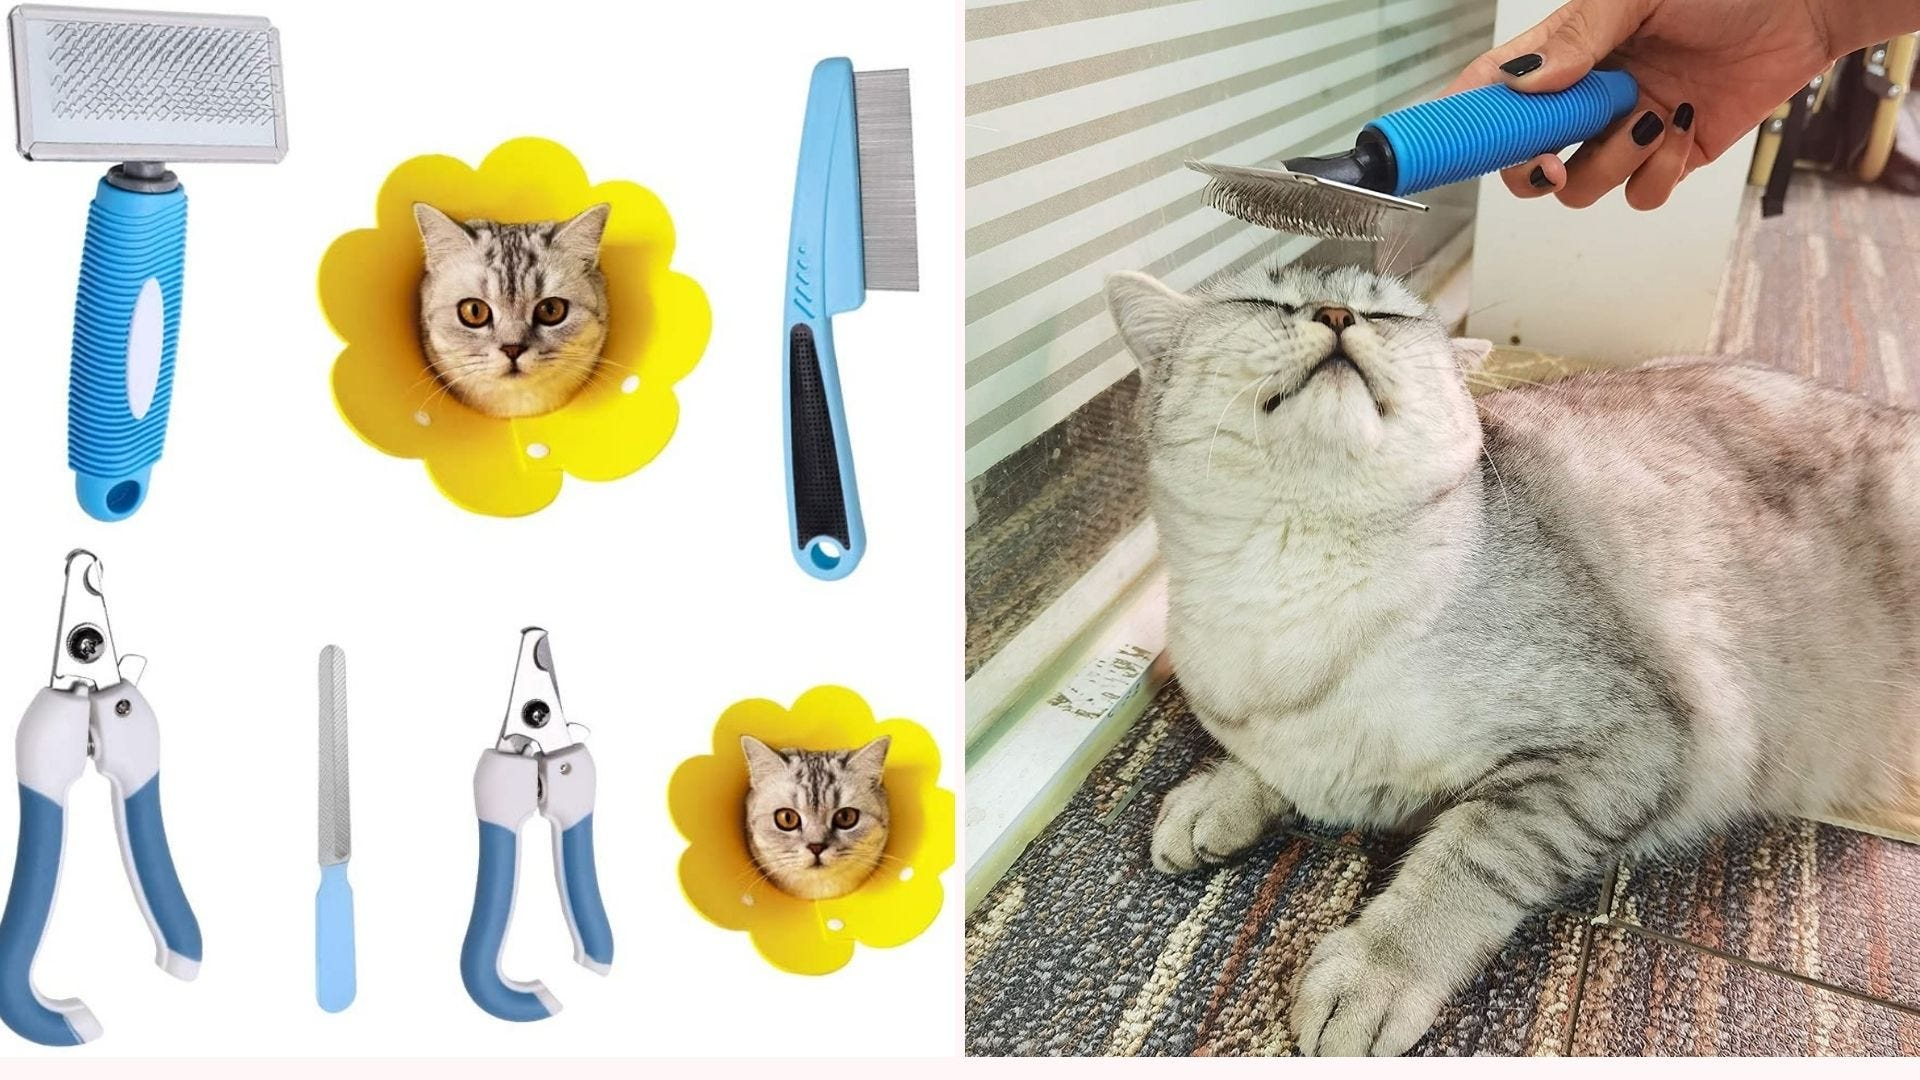 Cat grooming supplies and a cat getting a brushing.